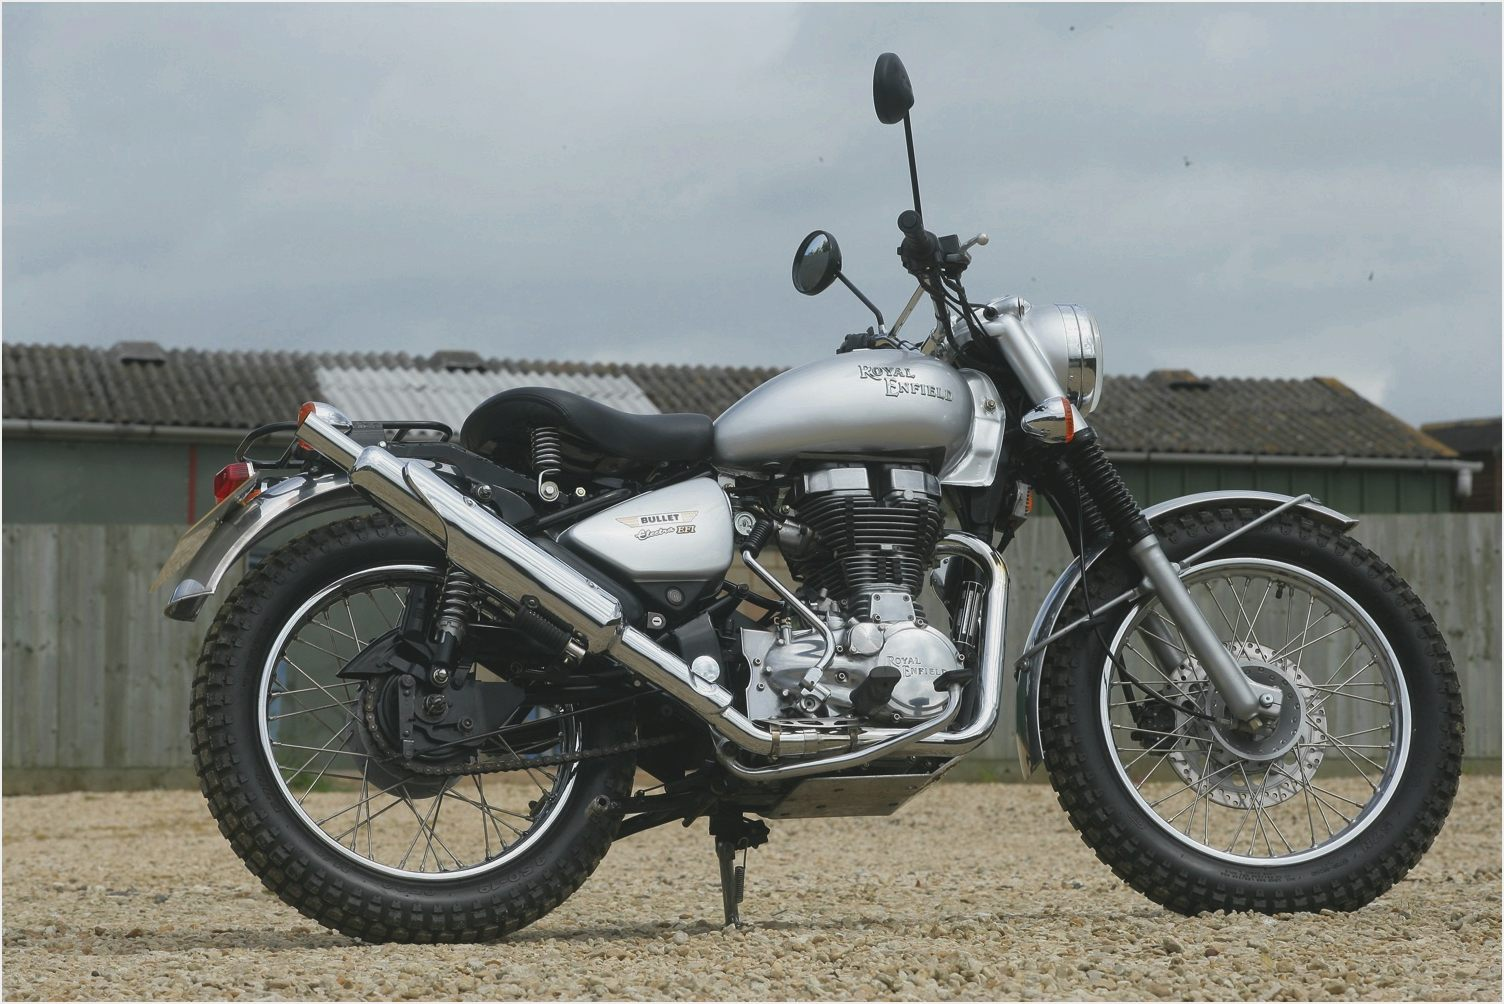 Royal Enfield Bullet 500 Trial Trail 2003 images #123198